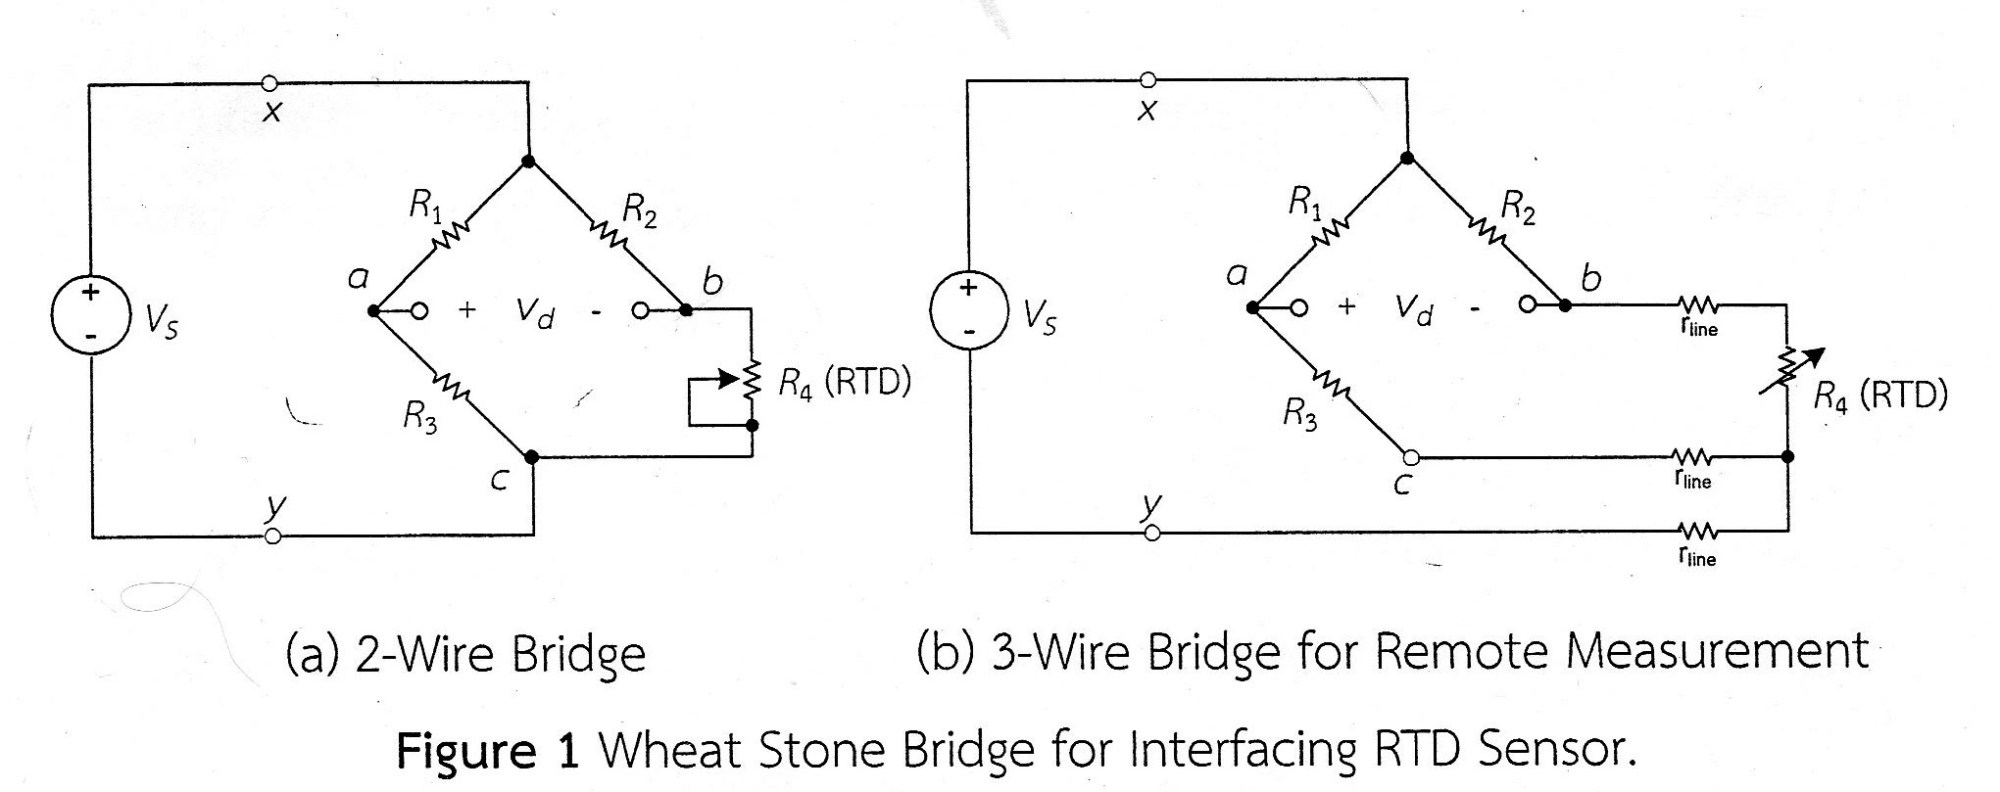 hight resolution of labiv op amp signal conditioning circuit for 3 wire rtd bridge three wire temperature sensor diagram